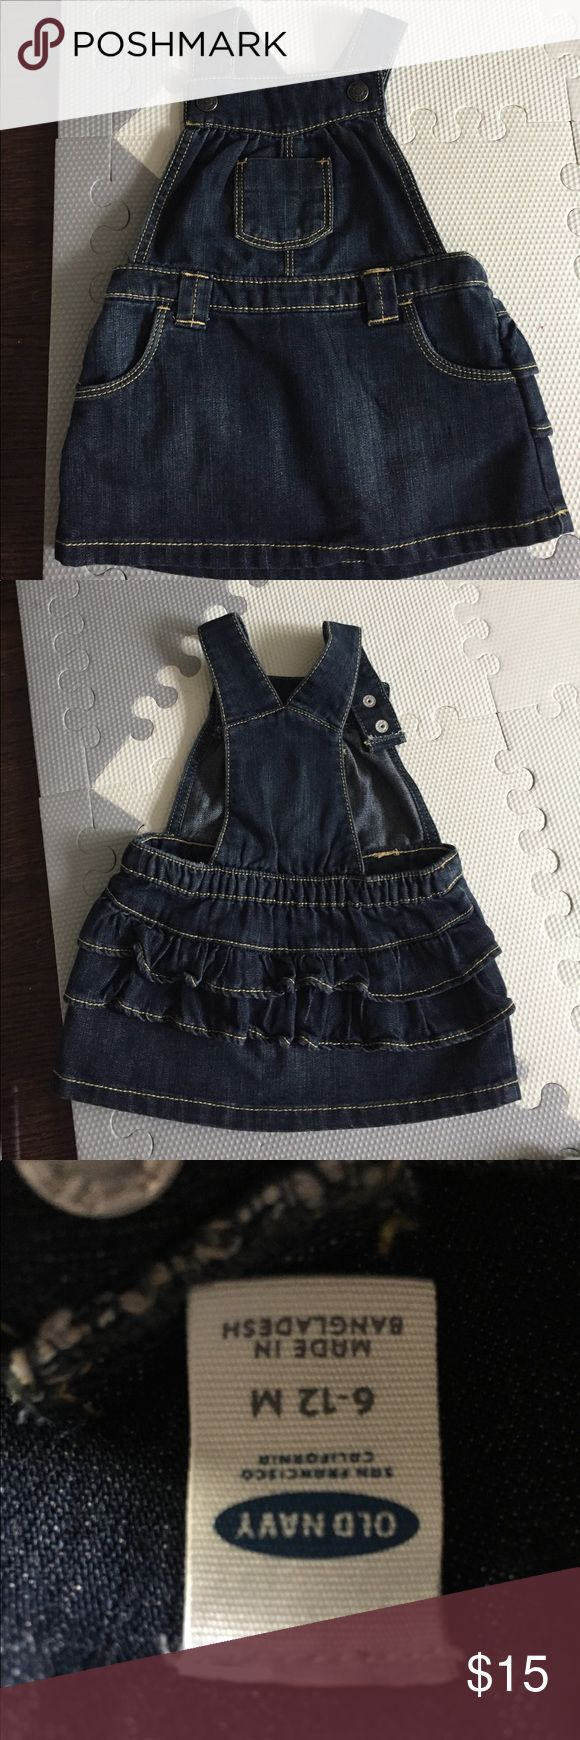 Old Navy overalls Worn once no signs of use. Size 6-12 month Old Navy Dresses Casual